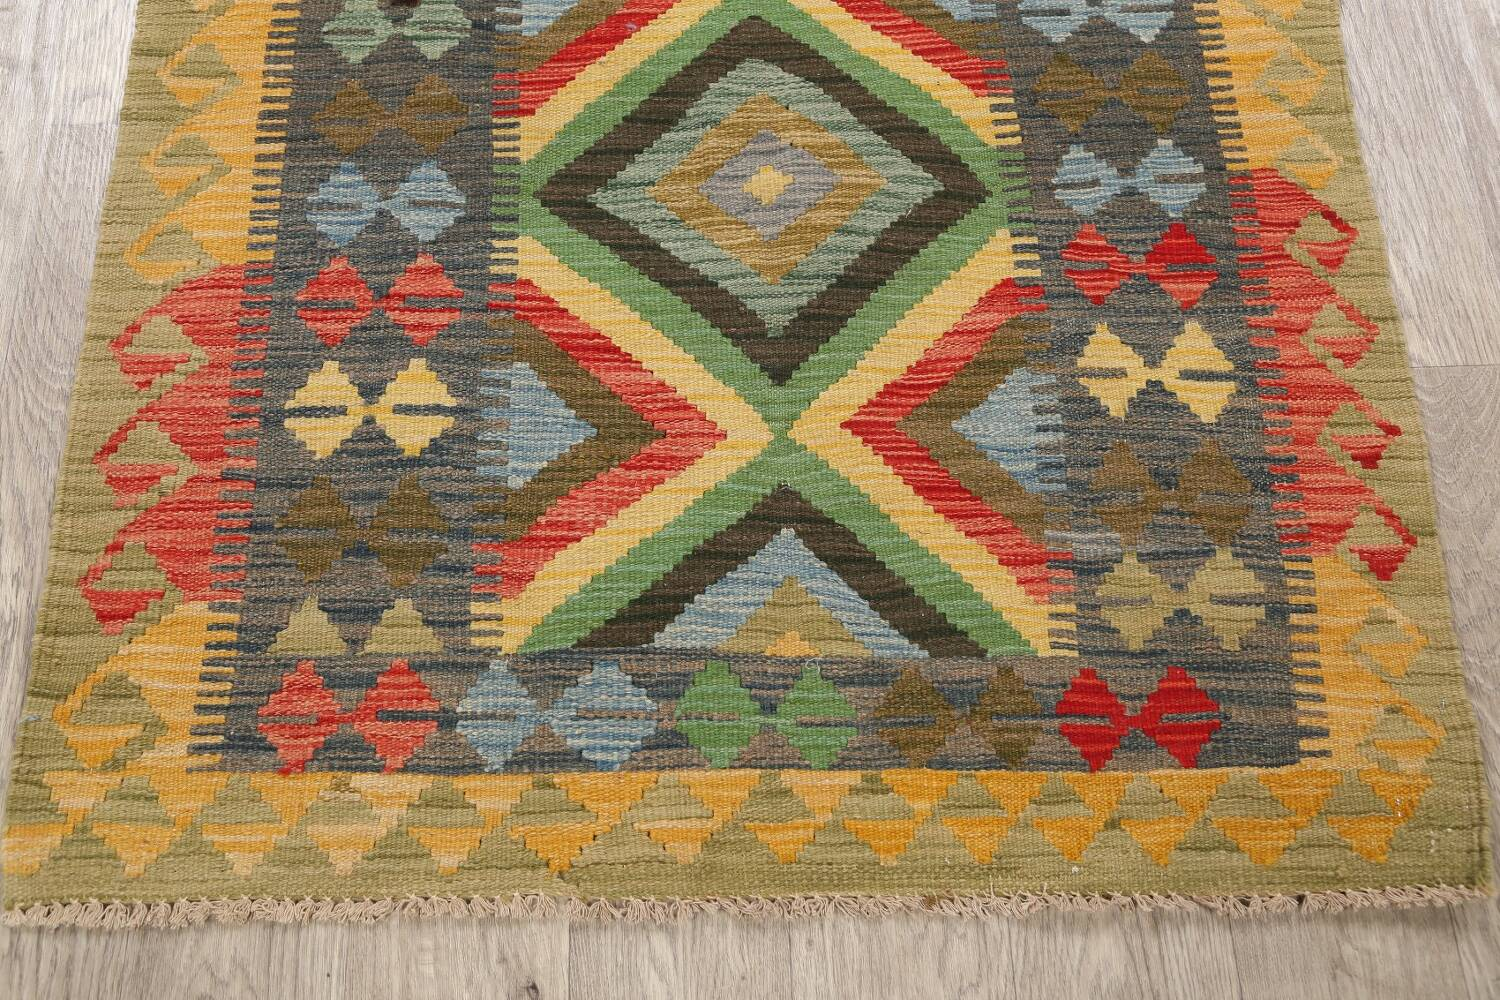 South-Western Reversible Kilim Oriental Area Rug 3x3 Square image 8